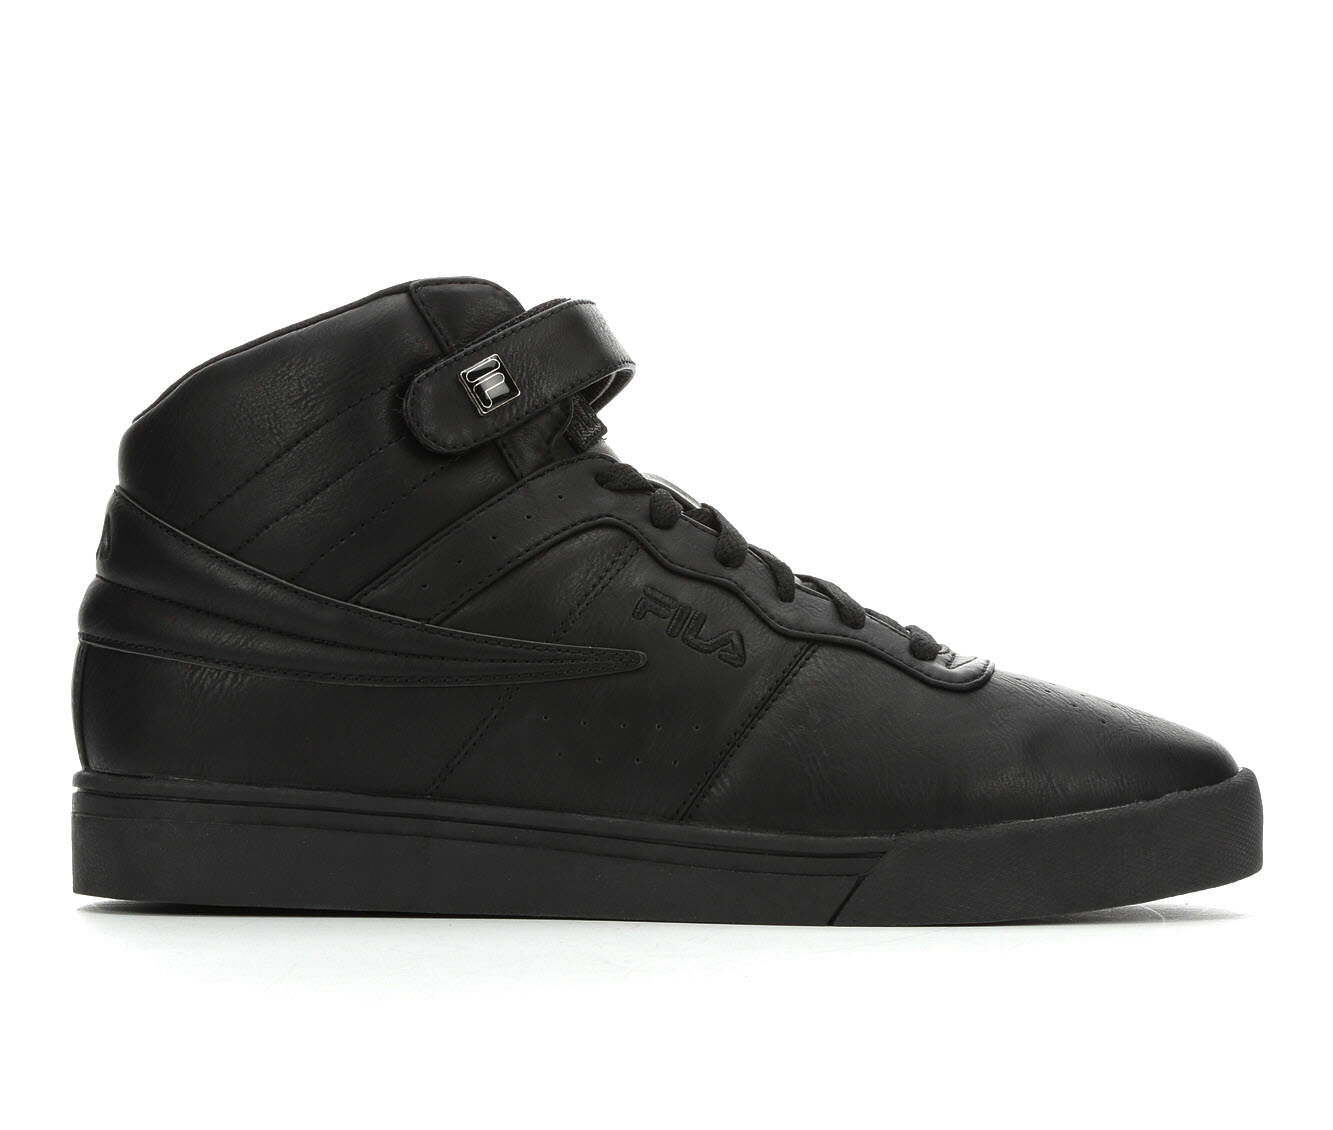 Men's Fila Vulc 13 Distressed Retro Sneakers Blk/Blk/Blk